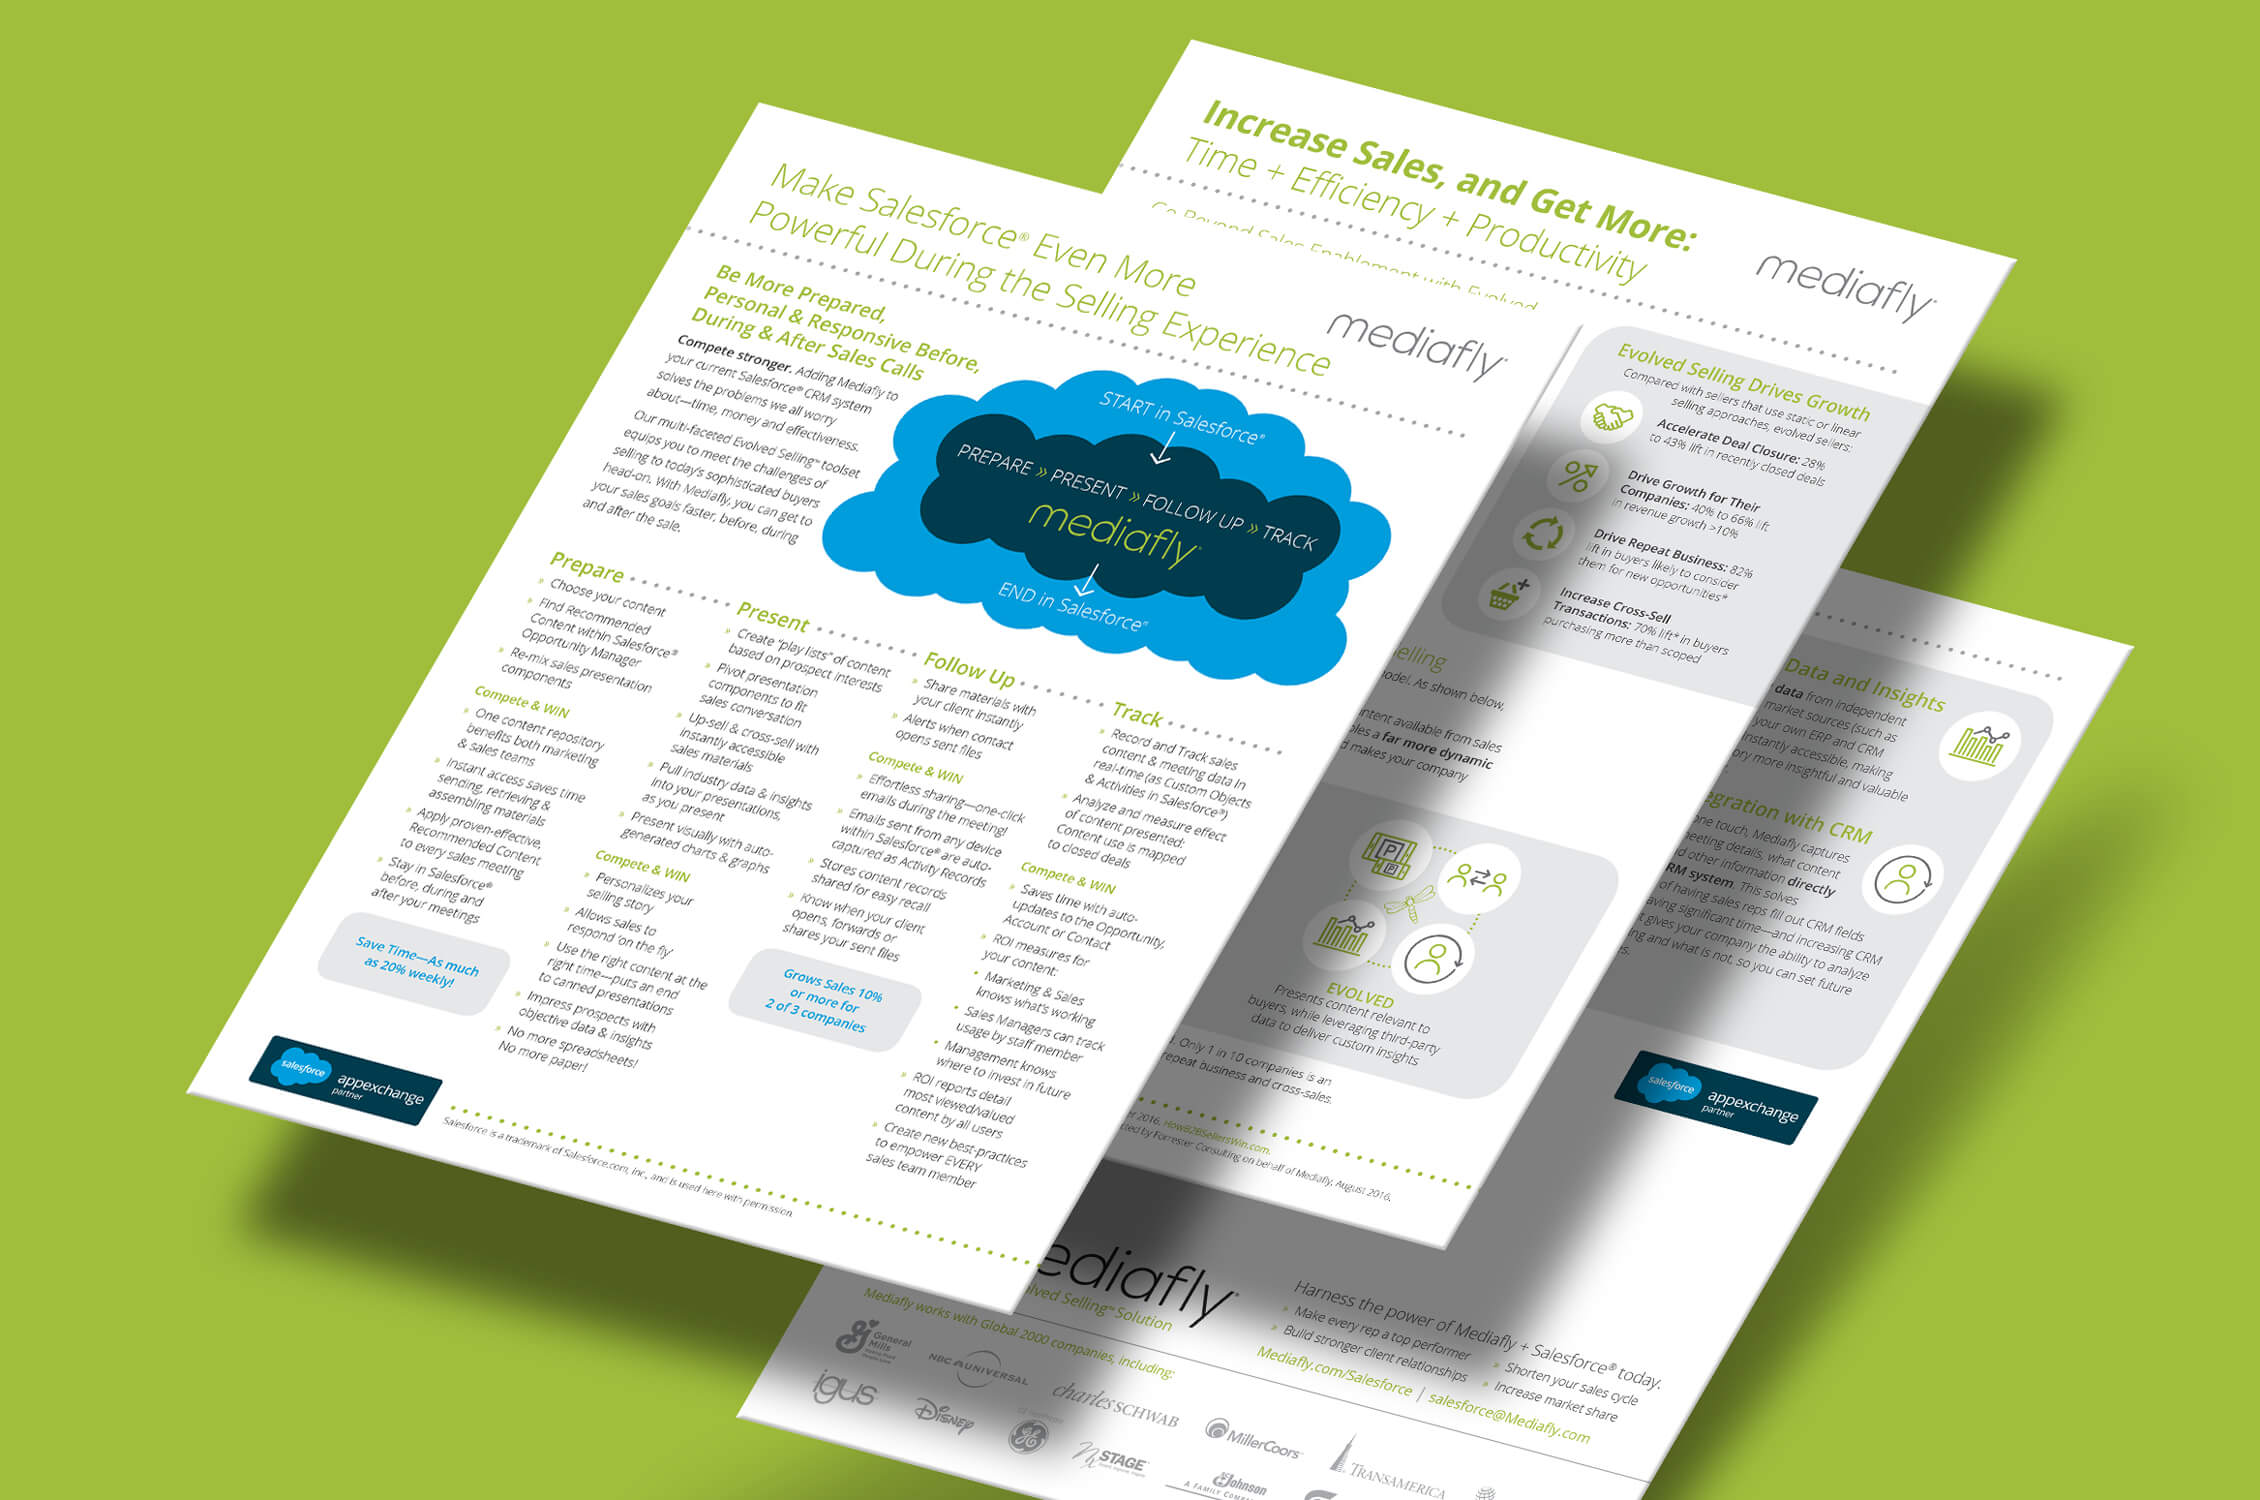 Mediafly Dreamforce 2017 one pagers image 01